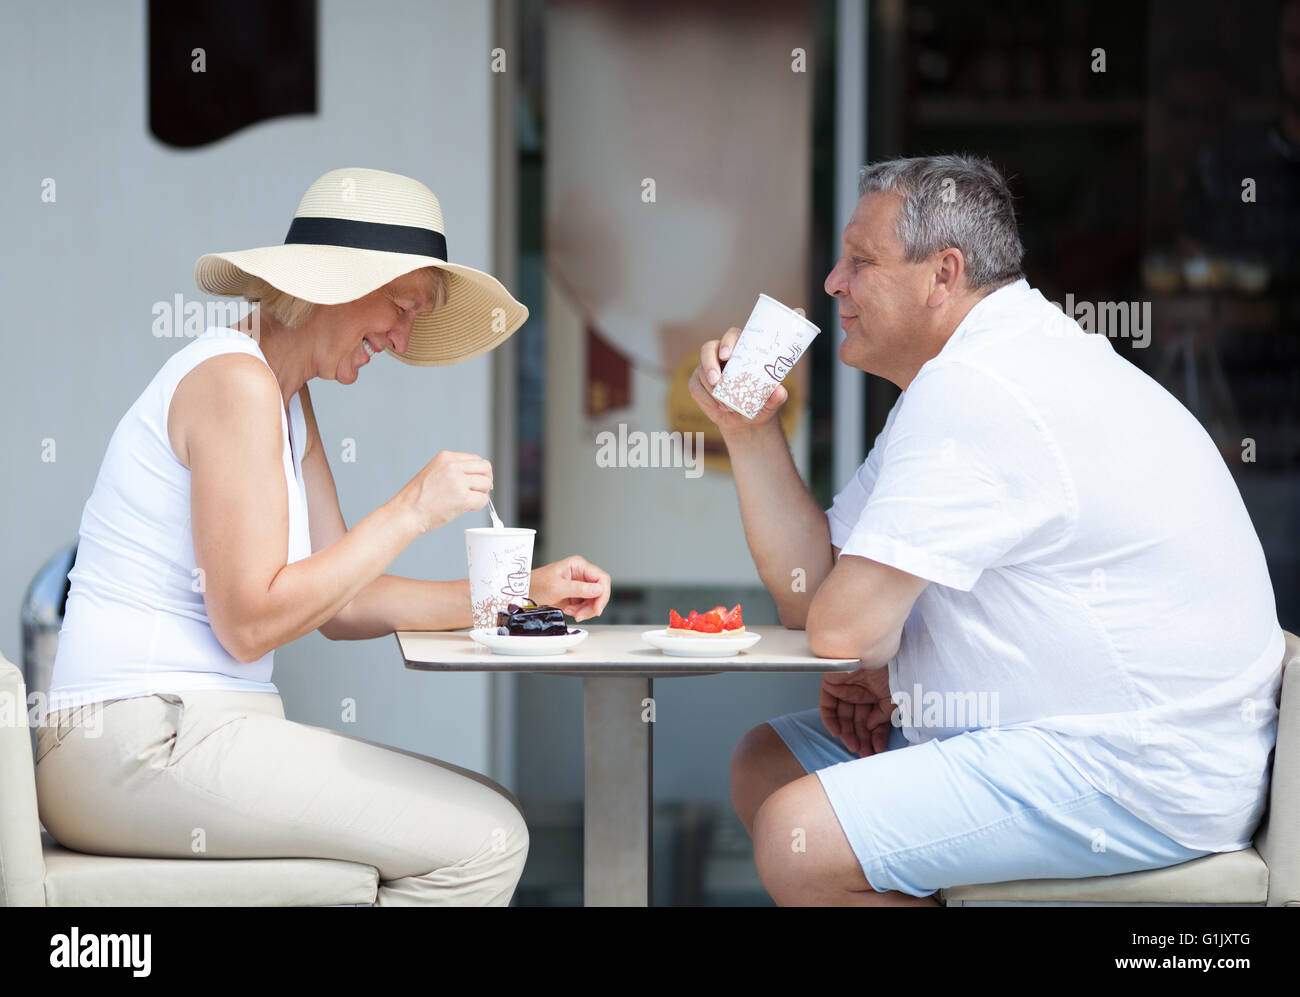 Couple Enjoying Coffee and Desserts on Cafe Patio - Stock Image